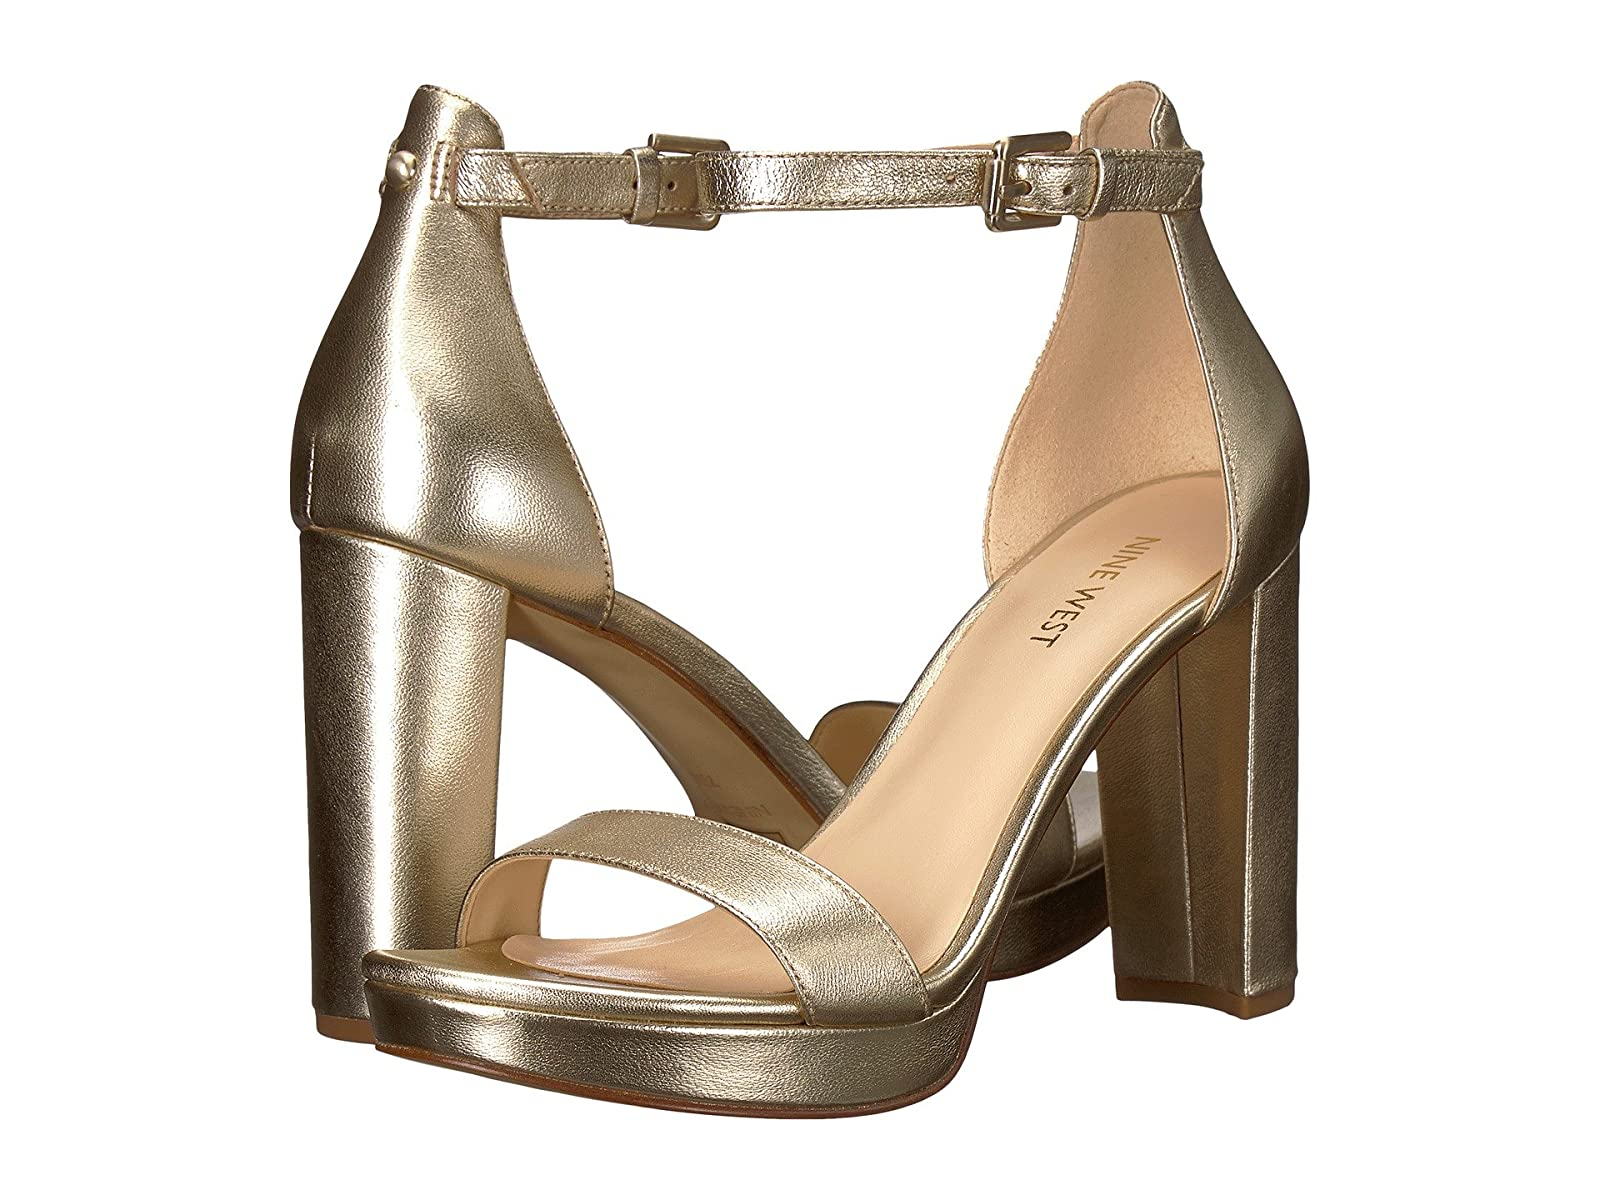 Nine West Dempsey Platform Heel SandalCheap and distinctive eye-catching shoes